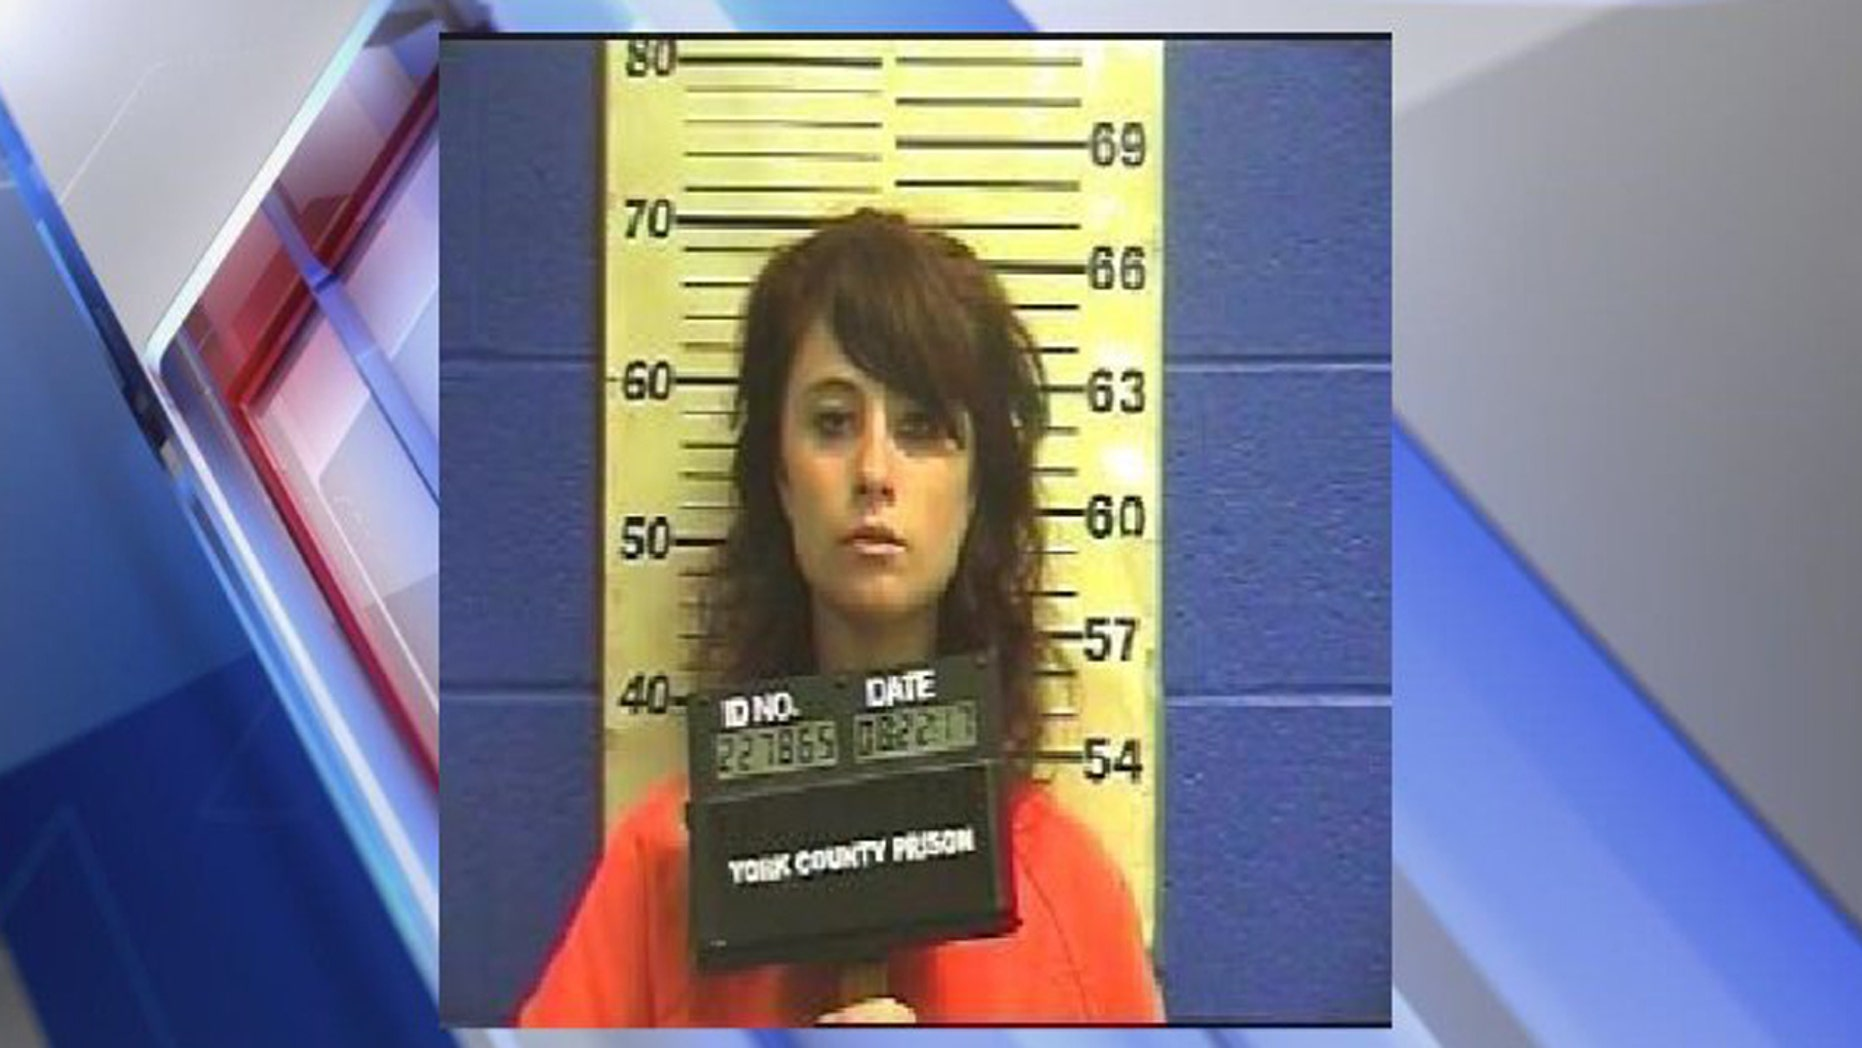 Xena Linn was charged in connection with a fire that was set.